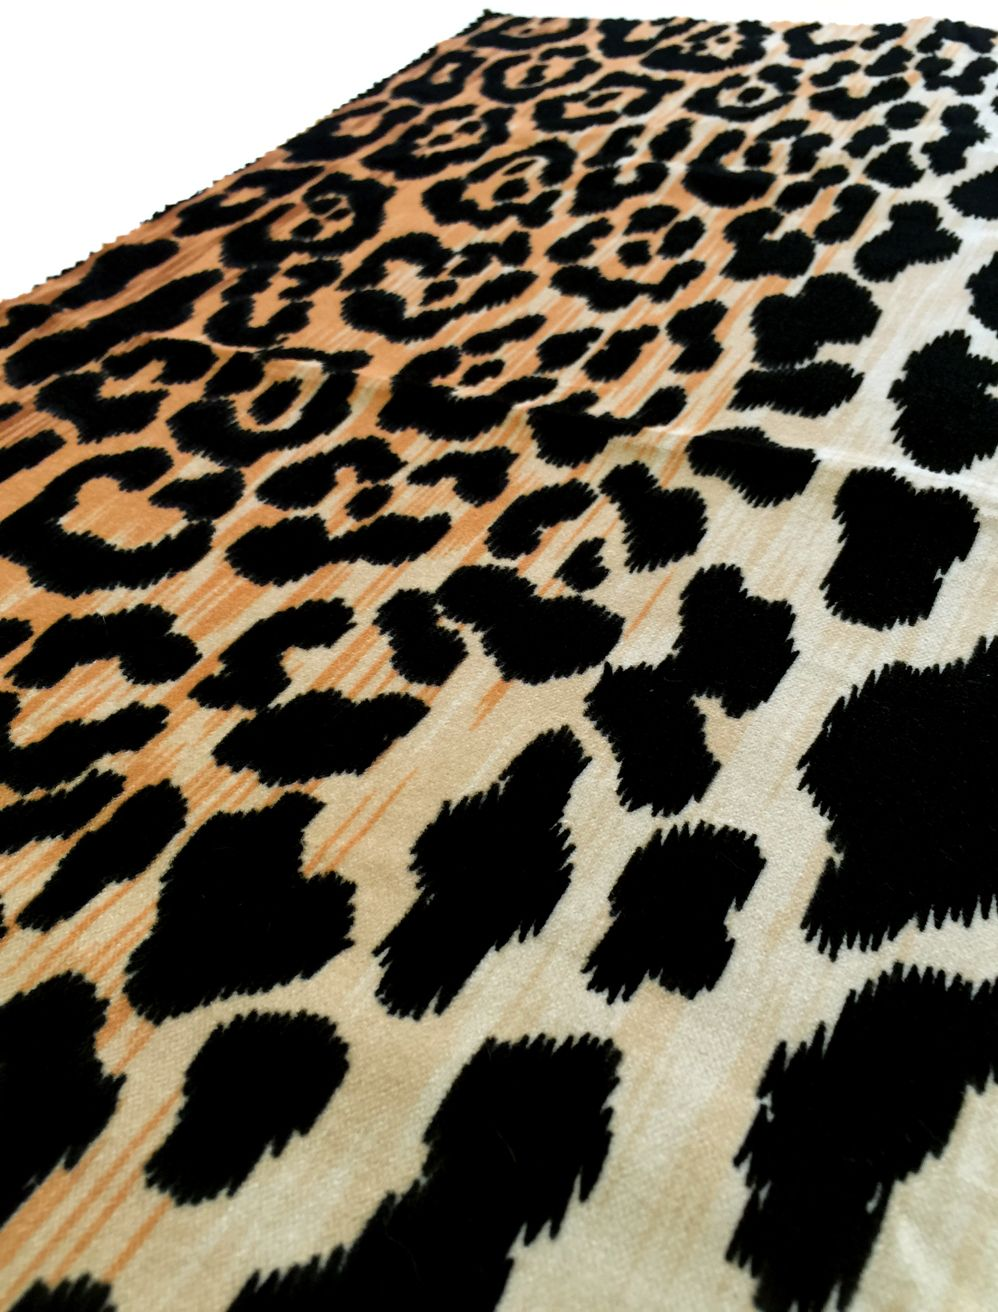 Jungle Animal Skin Prints BTY From Closed Quilt Greens and Browns